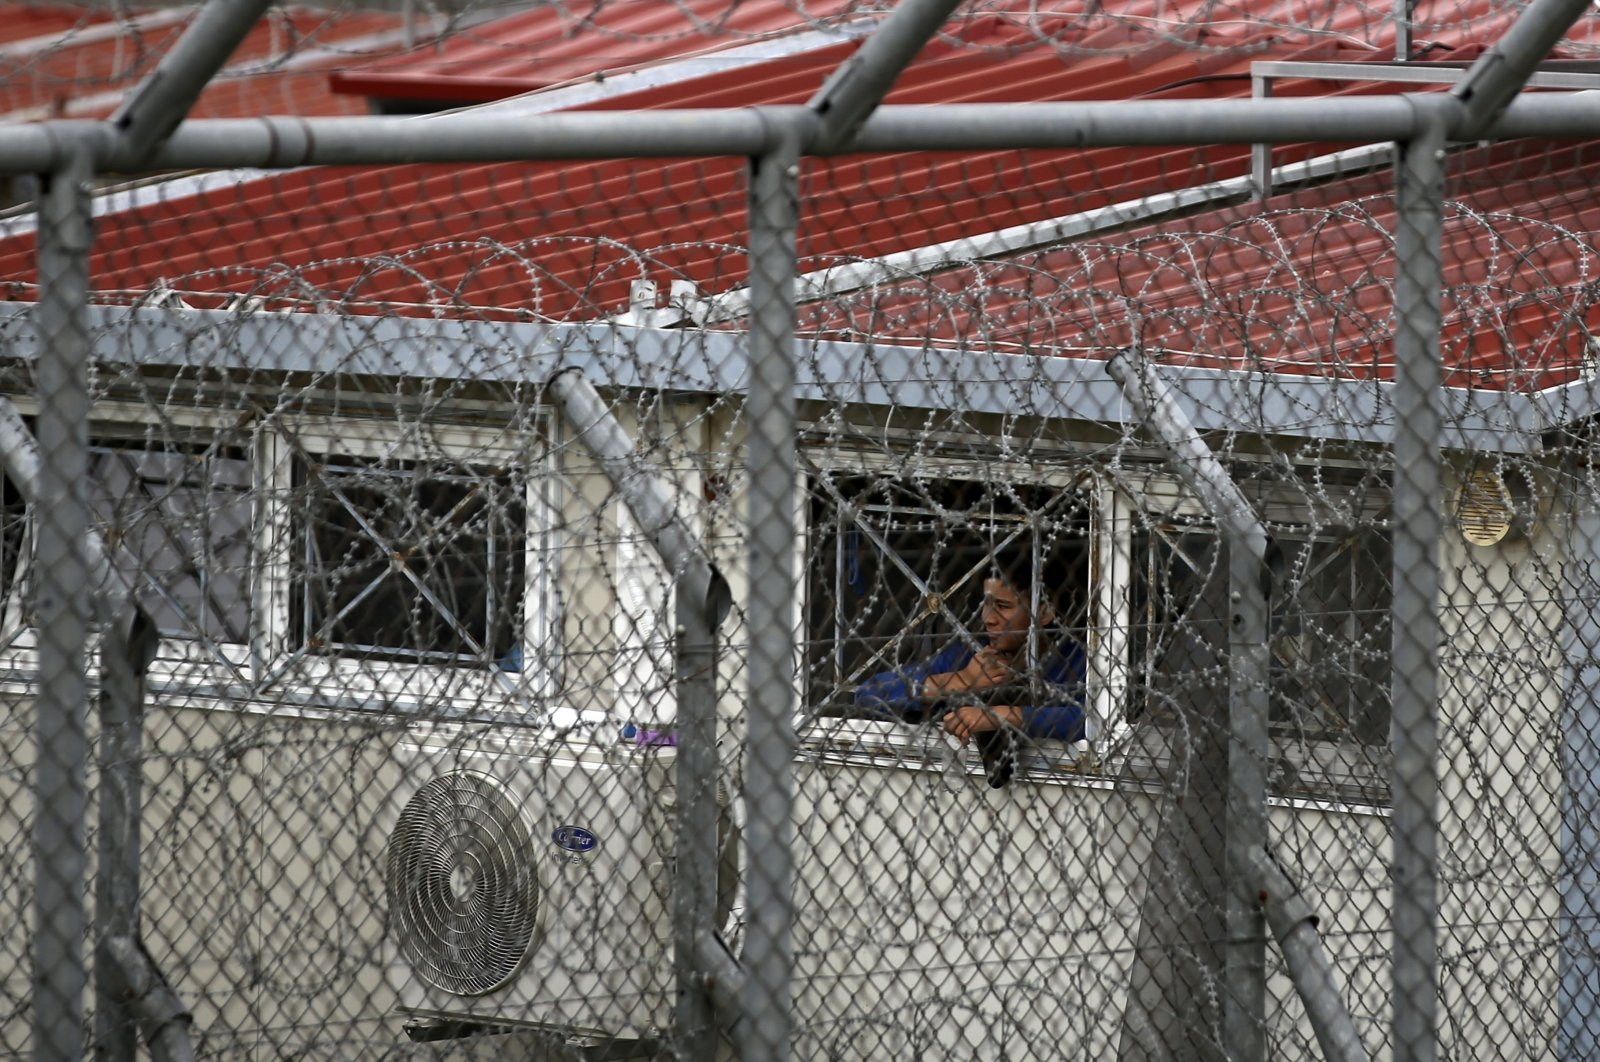 In this file photo dated Sunday, March 8, 2020, a migrant looks out from a detention center in the village of Fylakio, Evros region, near the Greek-Turkish border. (AP Photo)